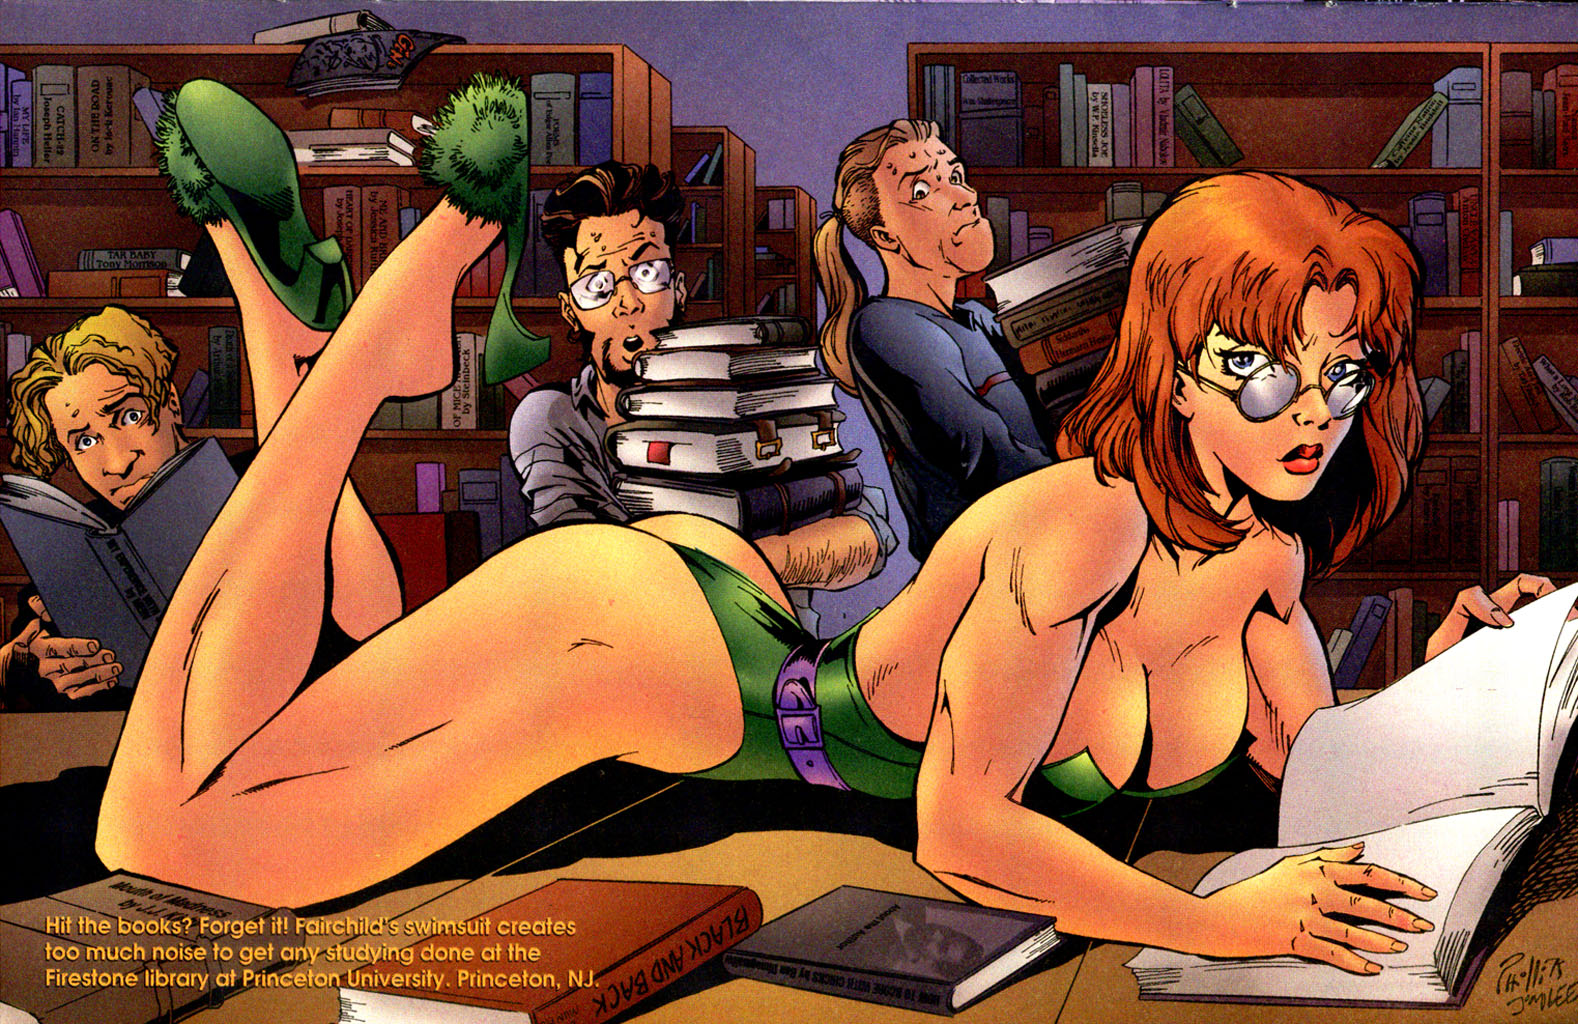 Xxx porn comic book covers